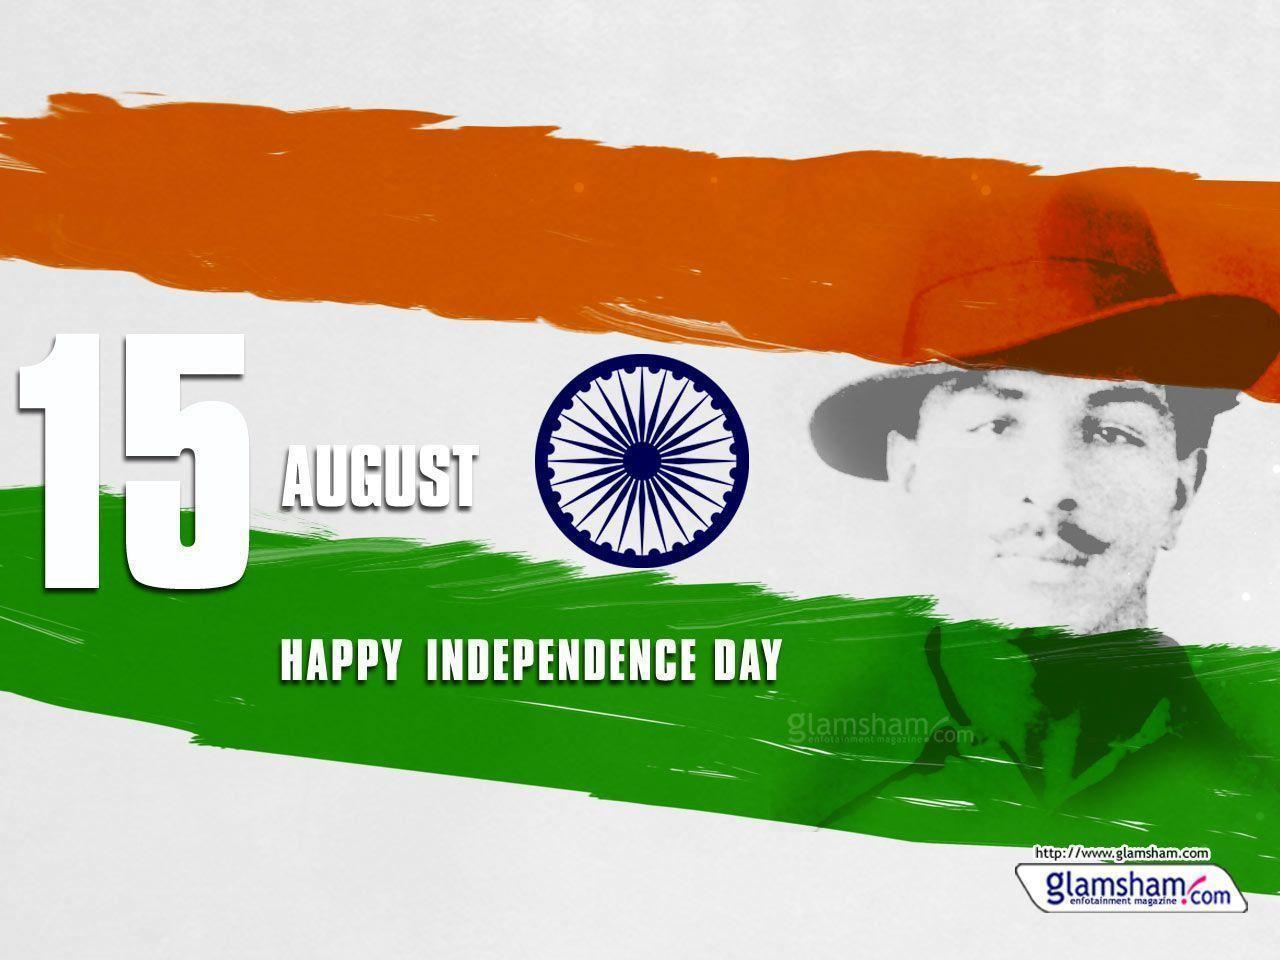 short essay on indian independence day Best 71st independence day speech, an essay with internal issues as a essay on independence day, anchoring speech script but indian government and security.